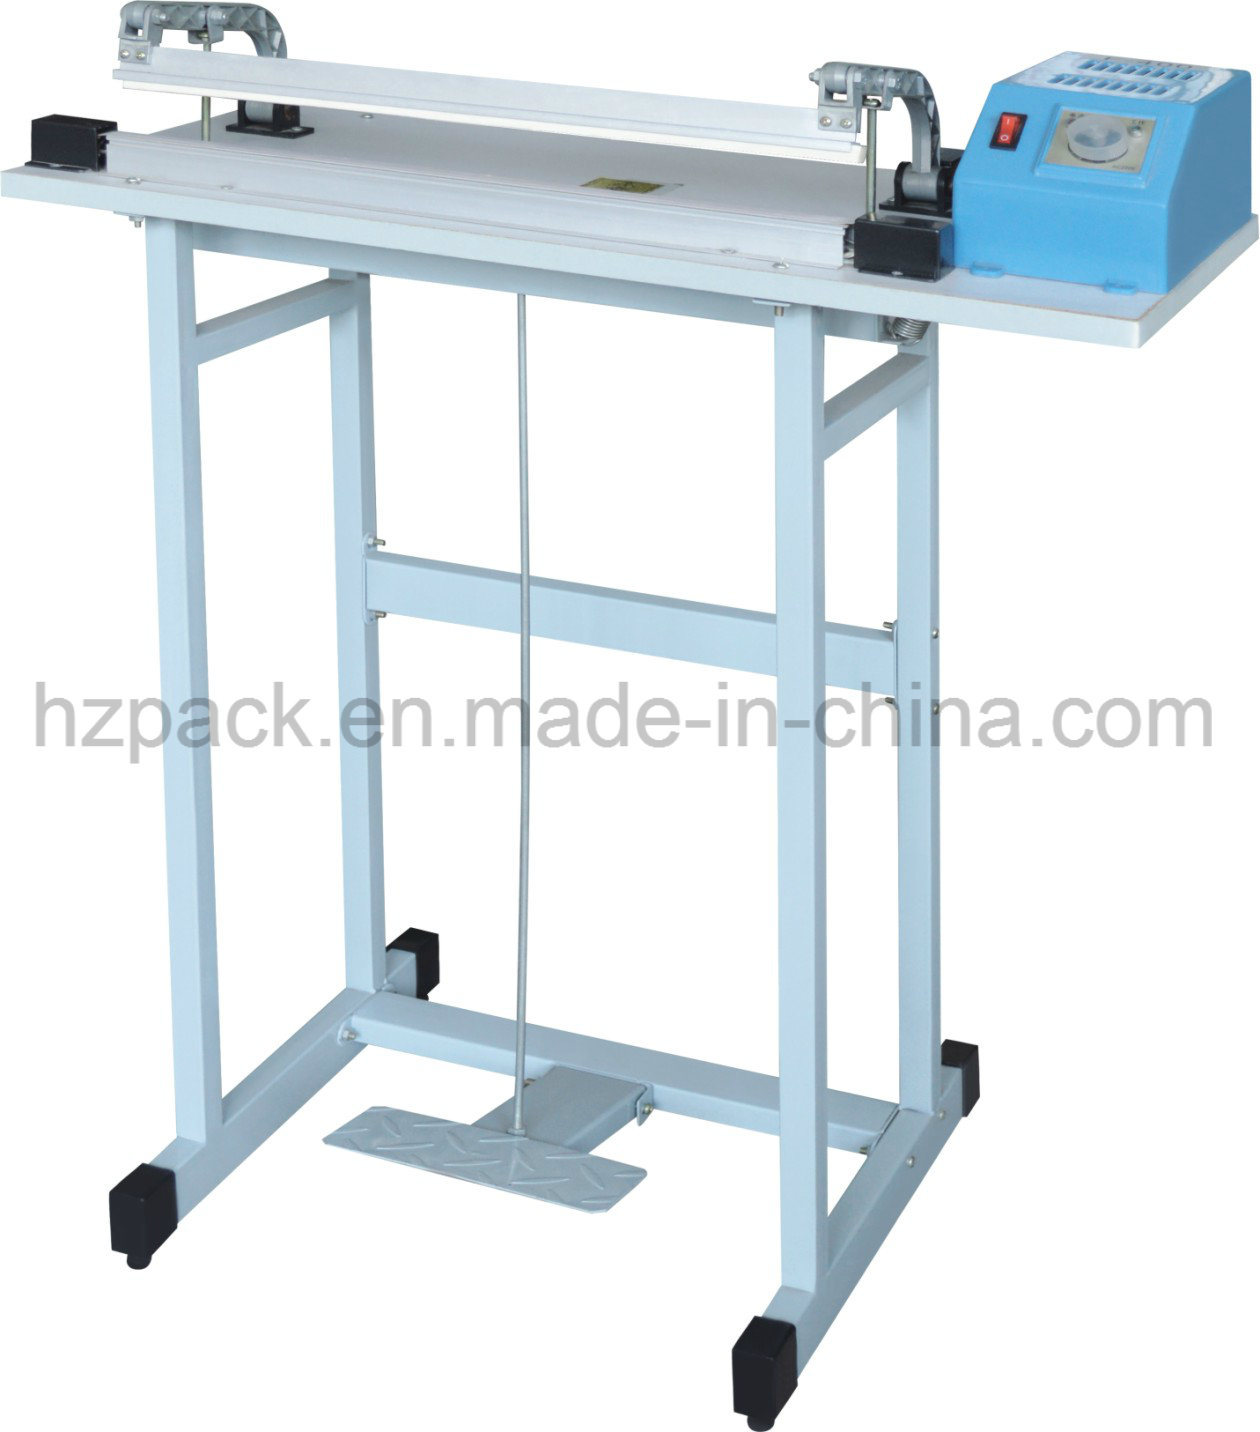 Impulse Pedal Sealer Sealing Packing Machine Sf300-700